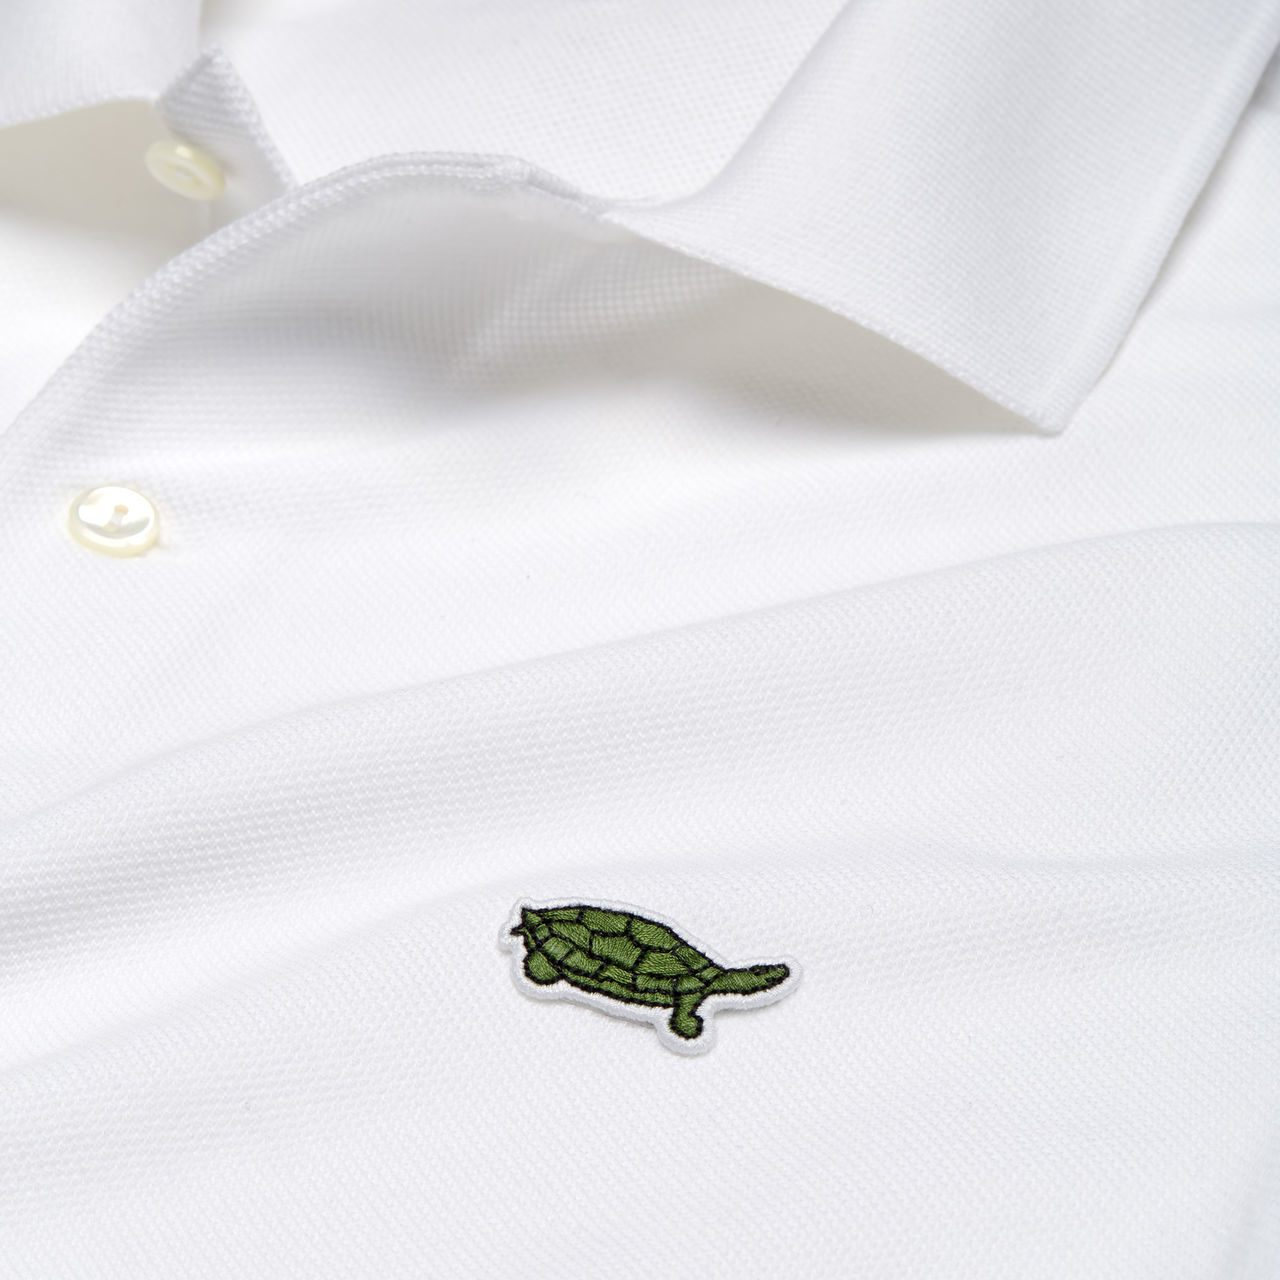 tortuga batagur lacoste save our species